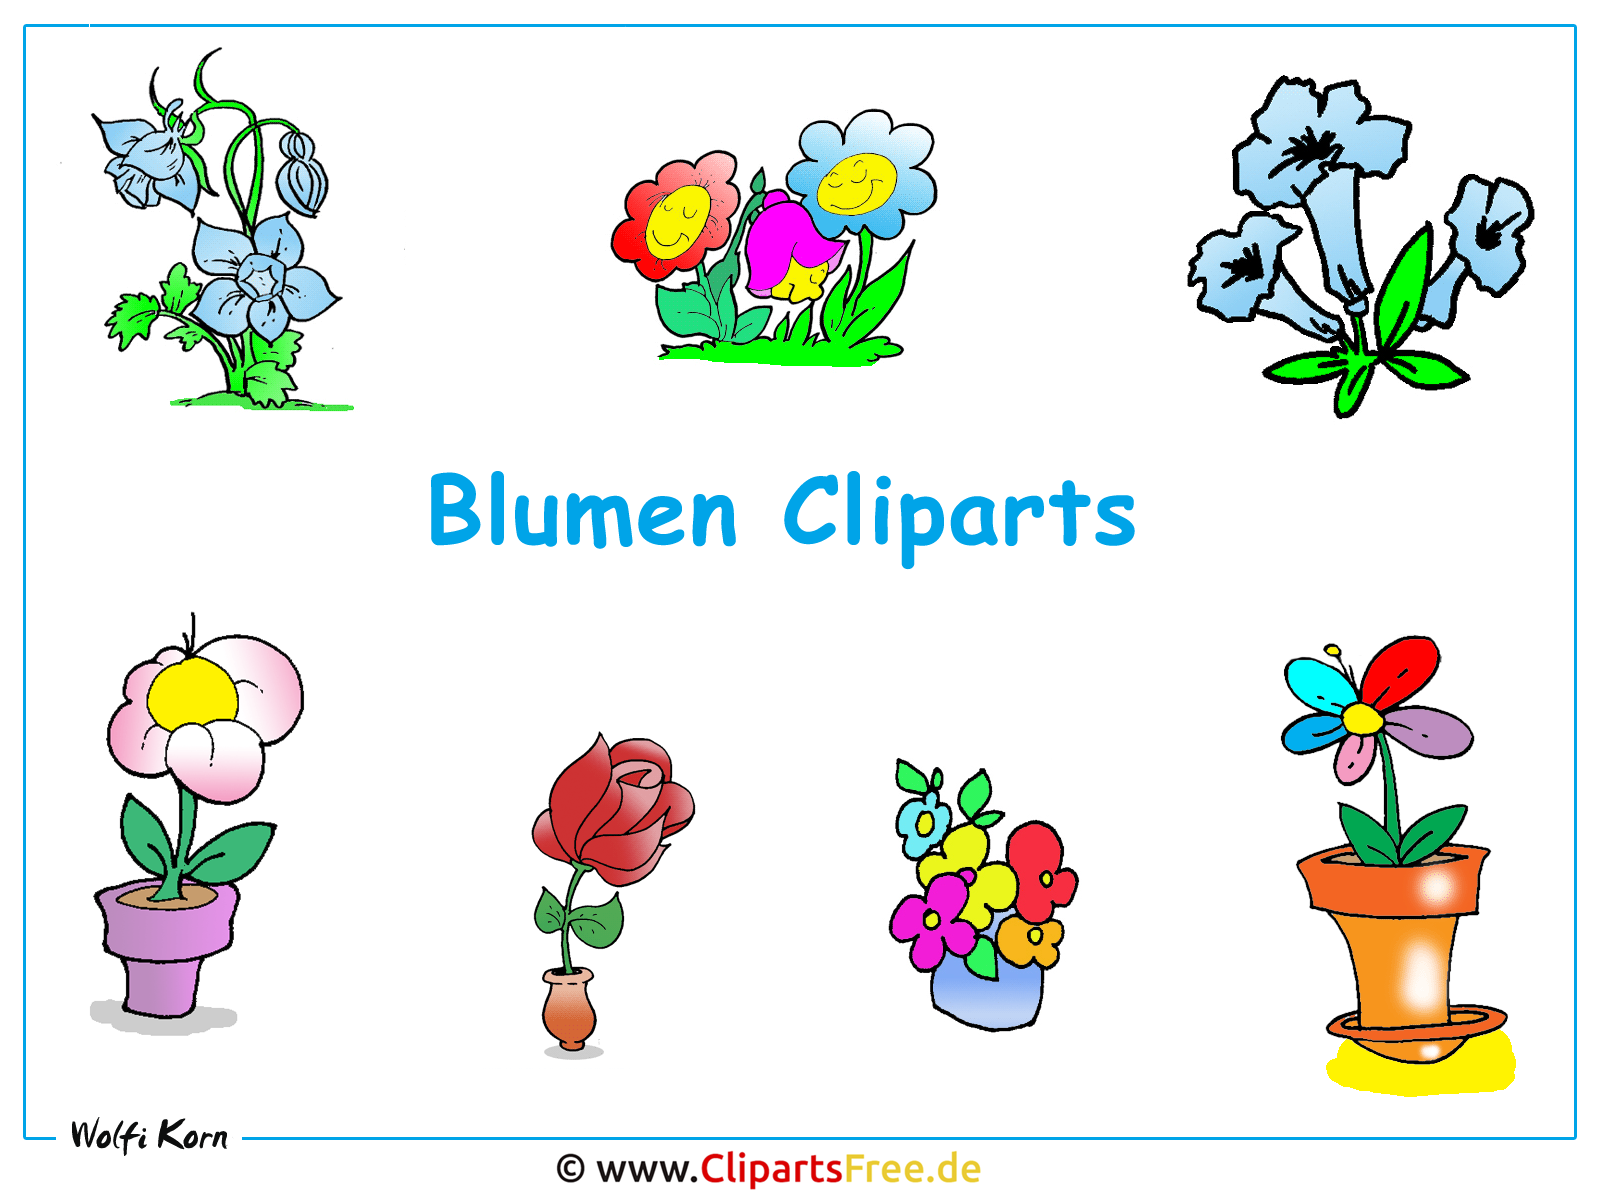 Cliparts blumen hintergrundbild gratis for Clipart gratis download